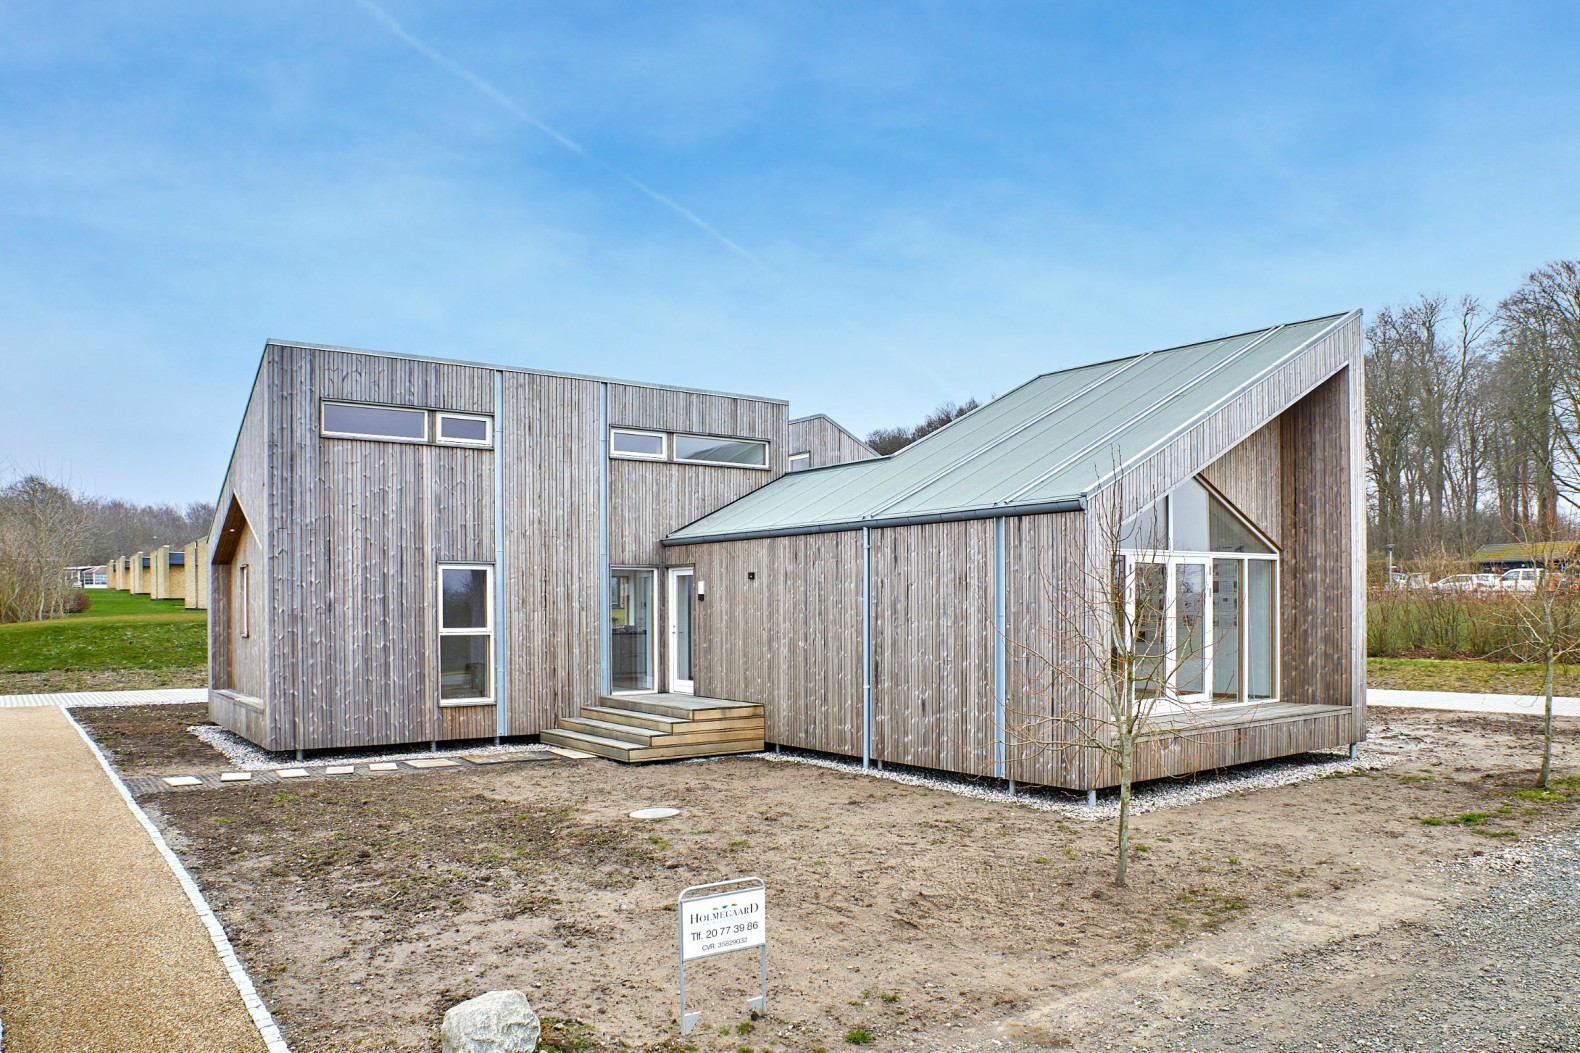 The world 39 s first biological house opens in denmark for Green home building